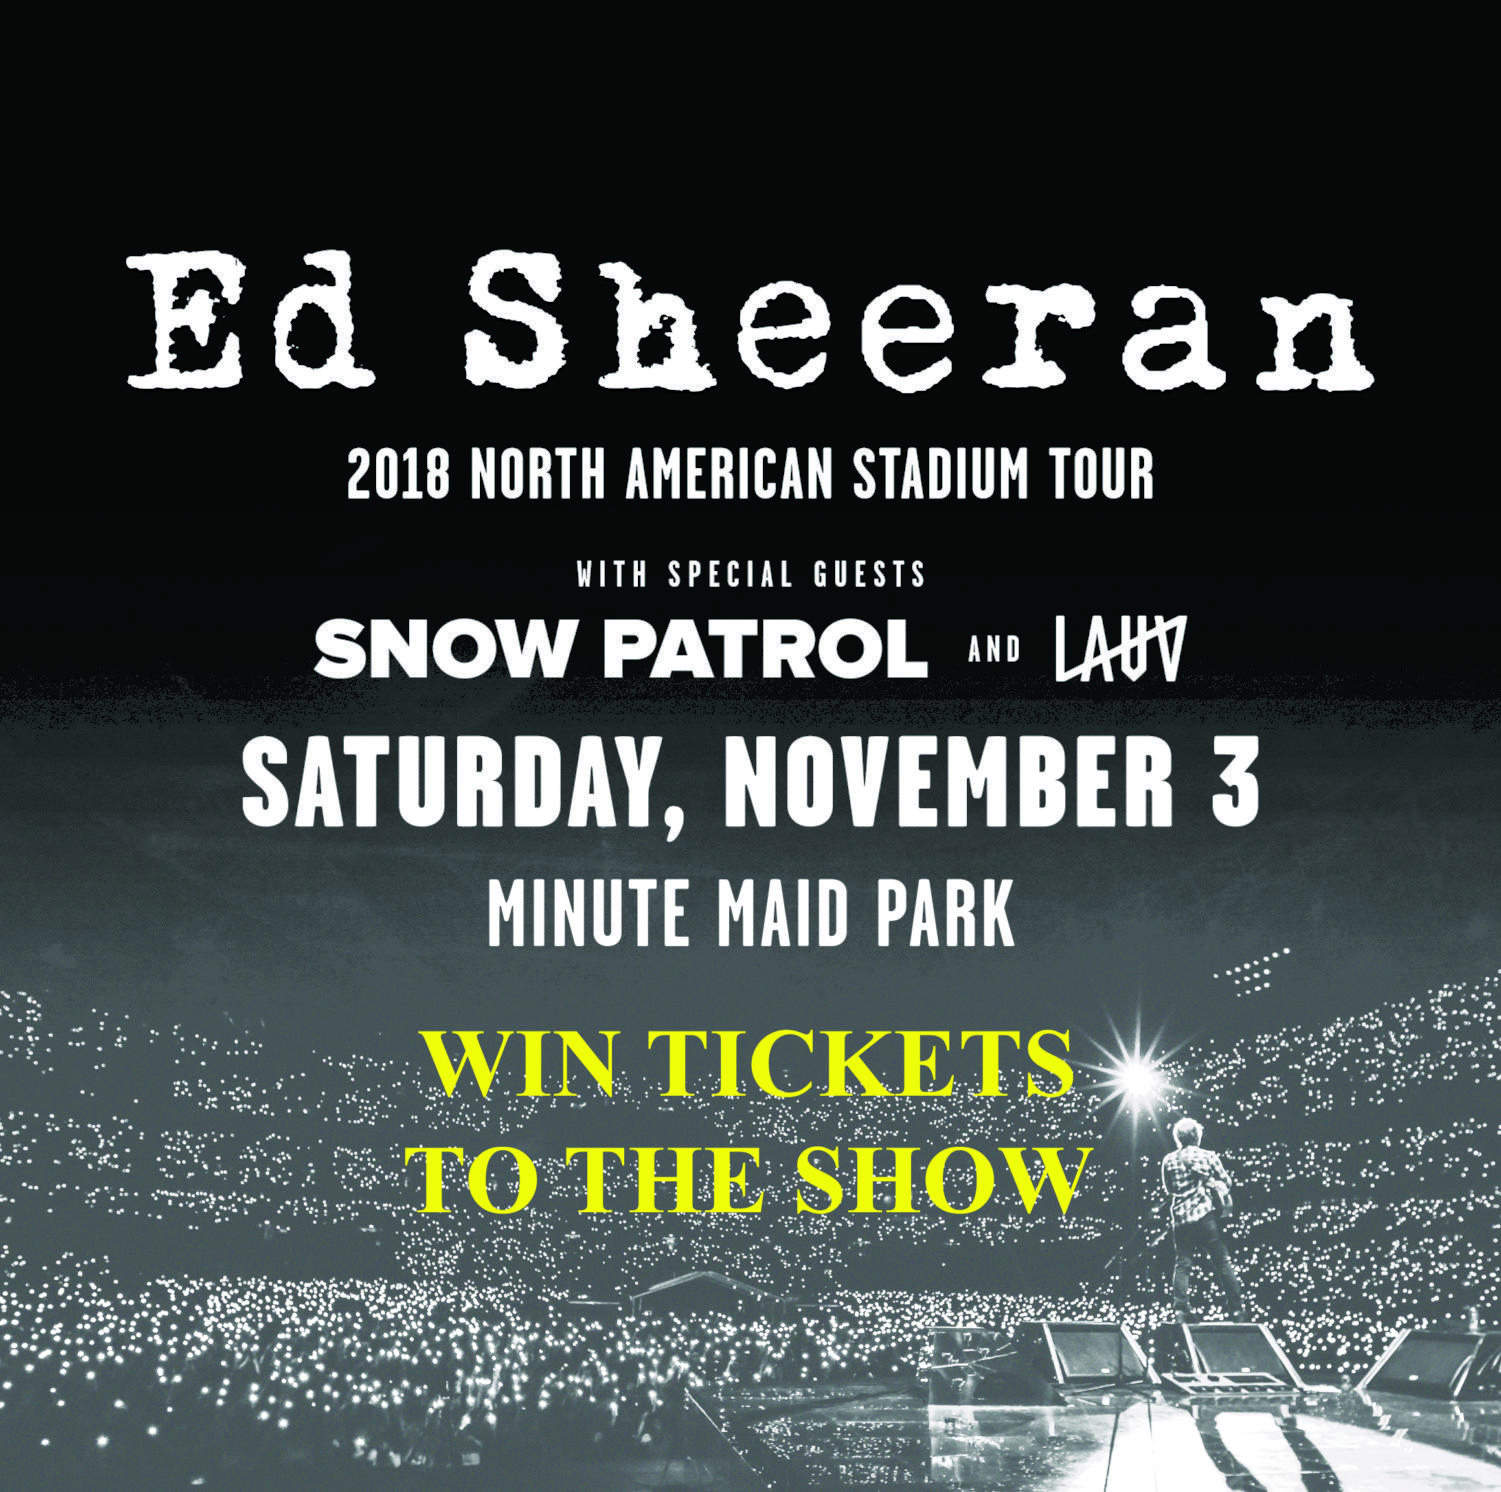 Ed Sheeran Concert Tickets Drawing Rules & Info – LC Howler